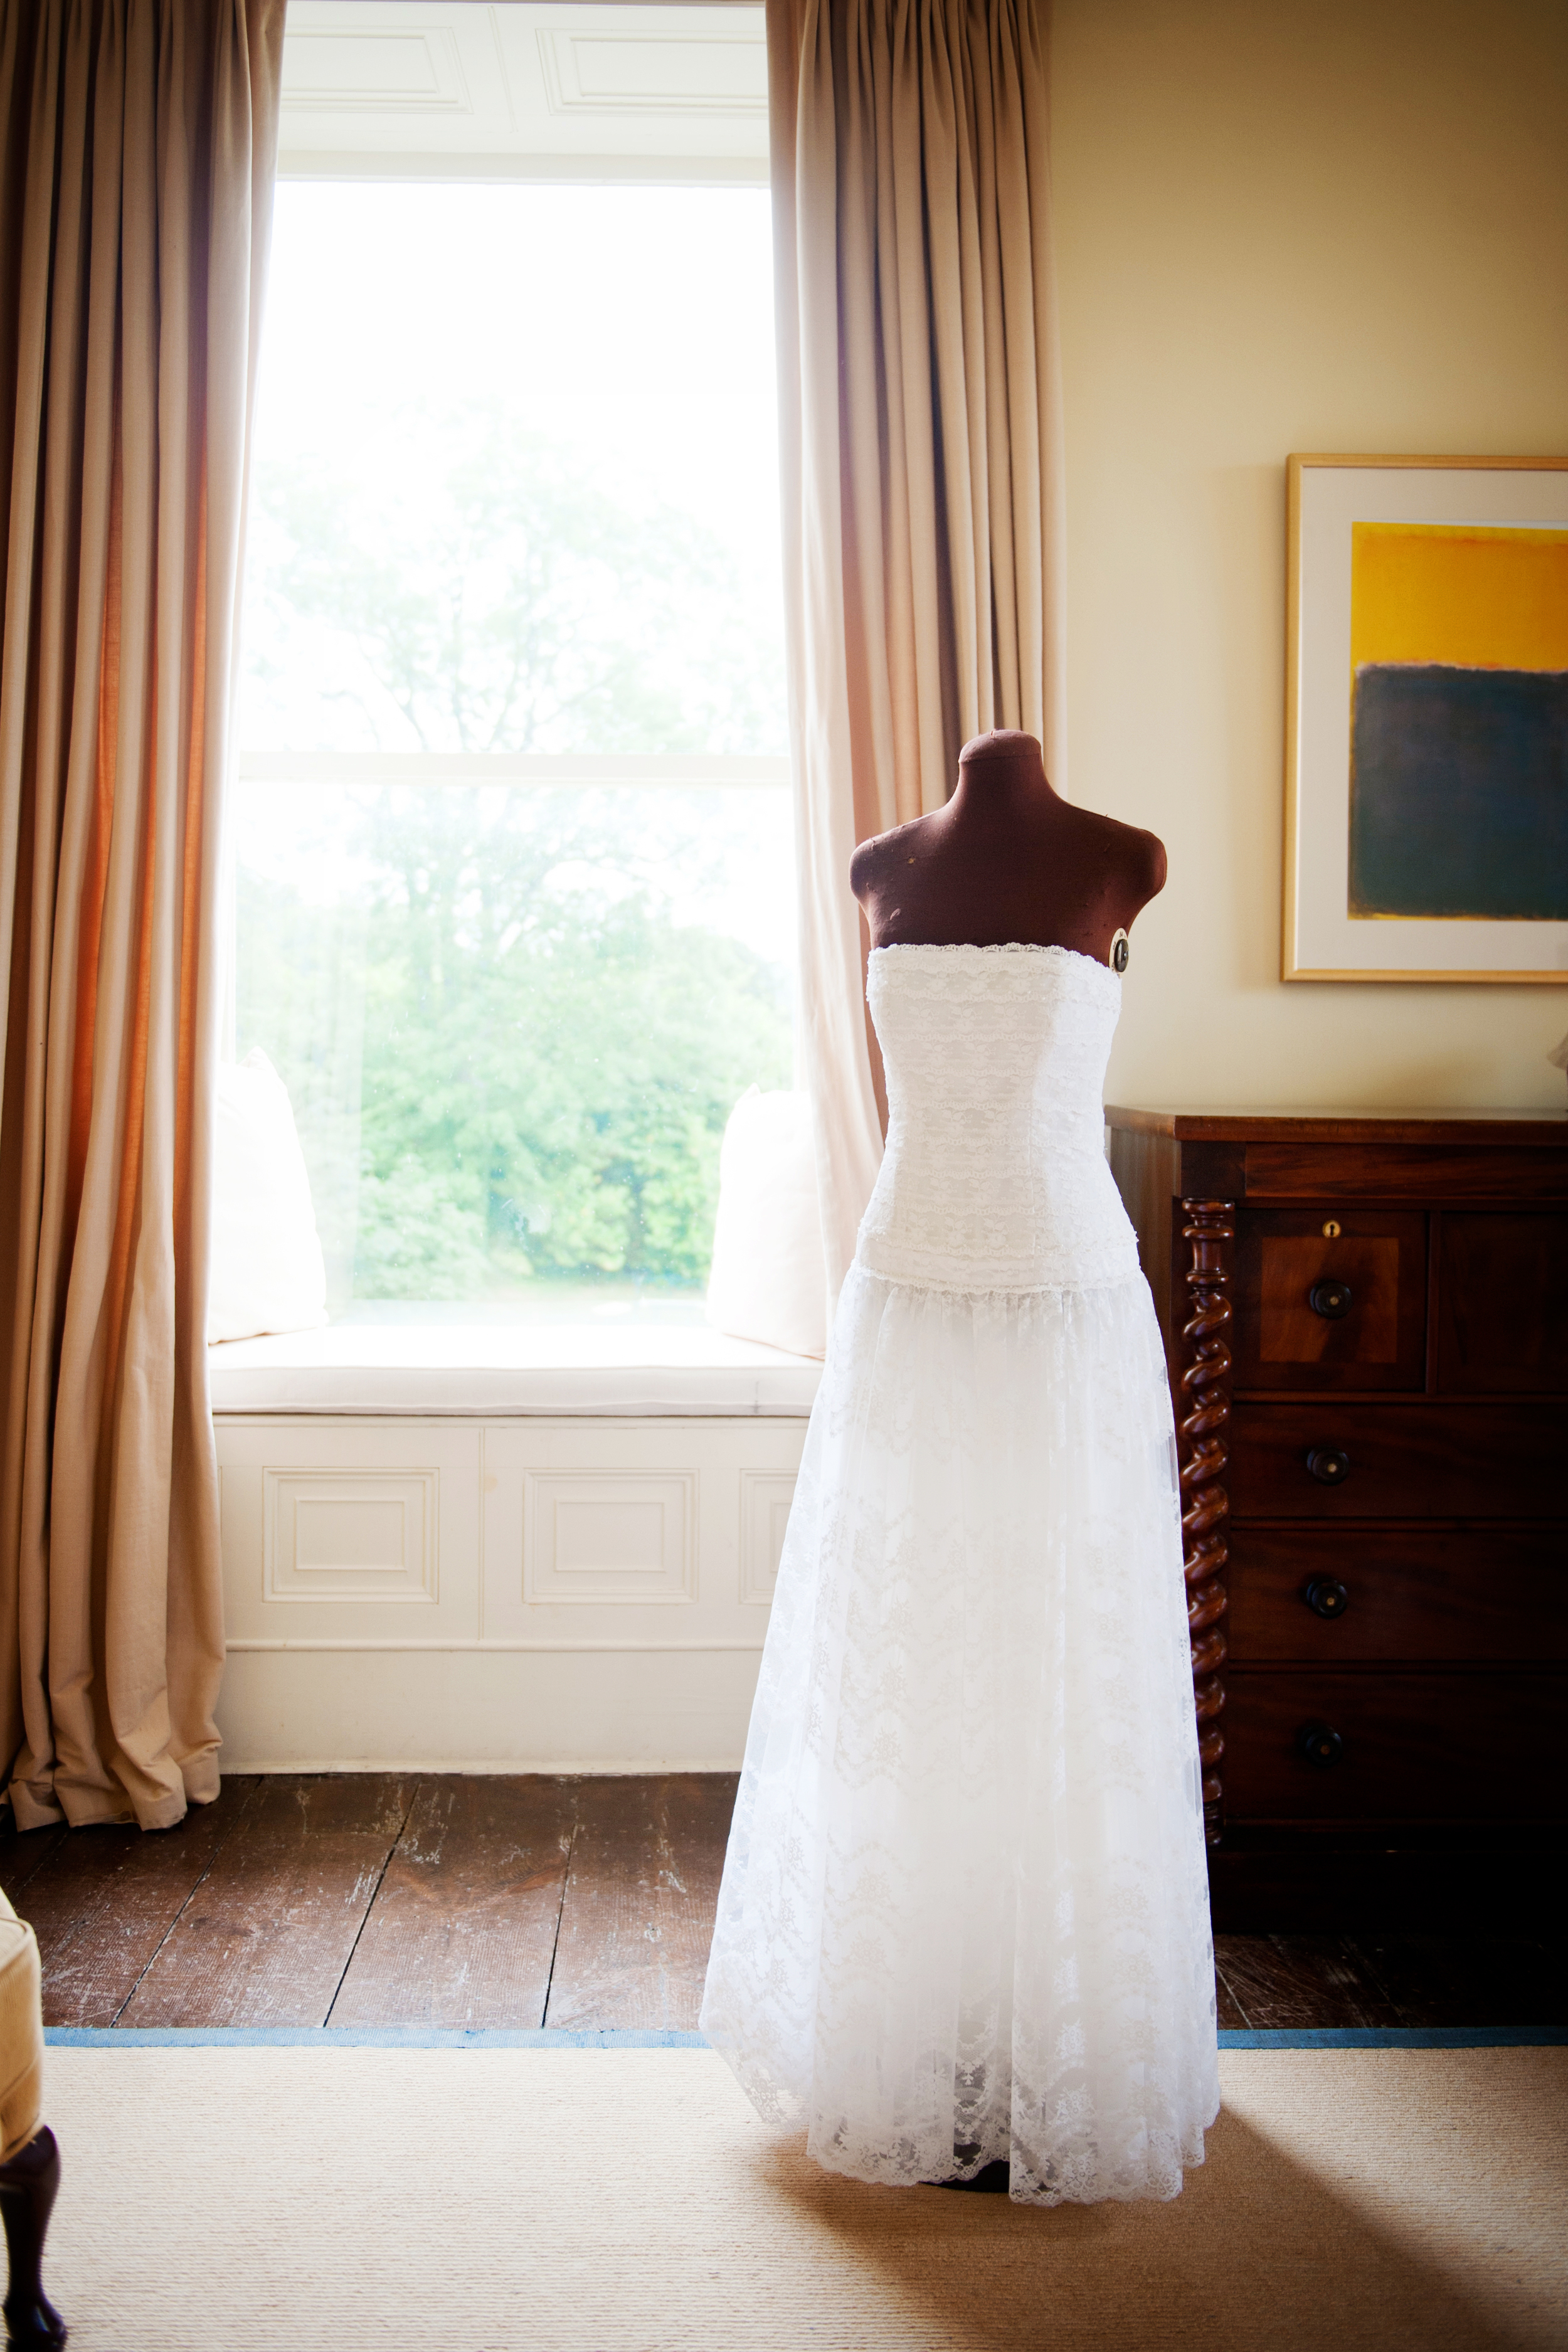 Vintage dress from Bella Bleu, Cork. Top / corset was crafted by Nell McCarthy, Cormac's grandmother. - Photography:Weddings by KARA  © - Wedding Location: Kilshane House, Tipperary, Ireland